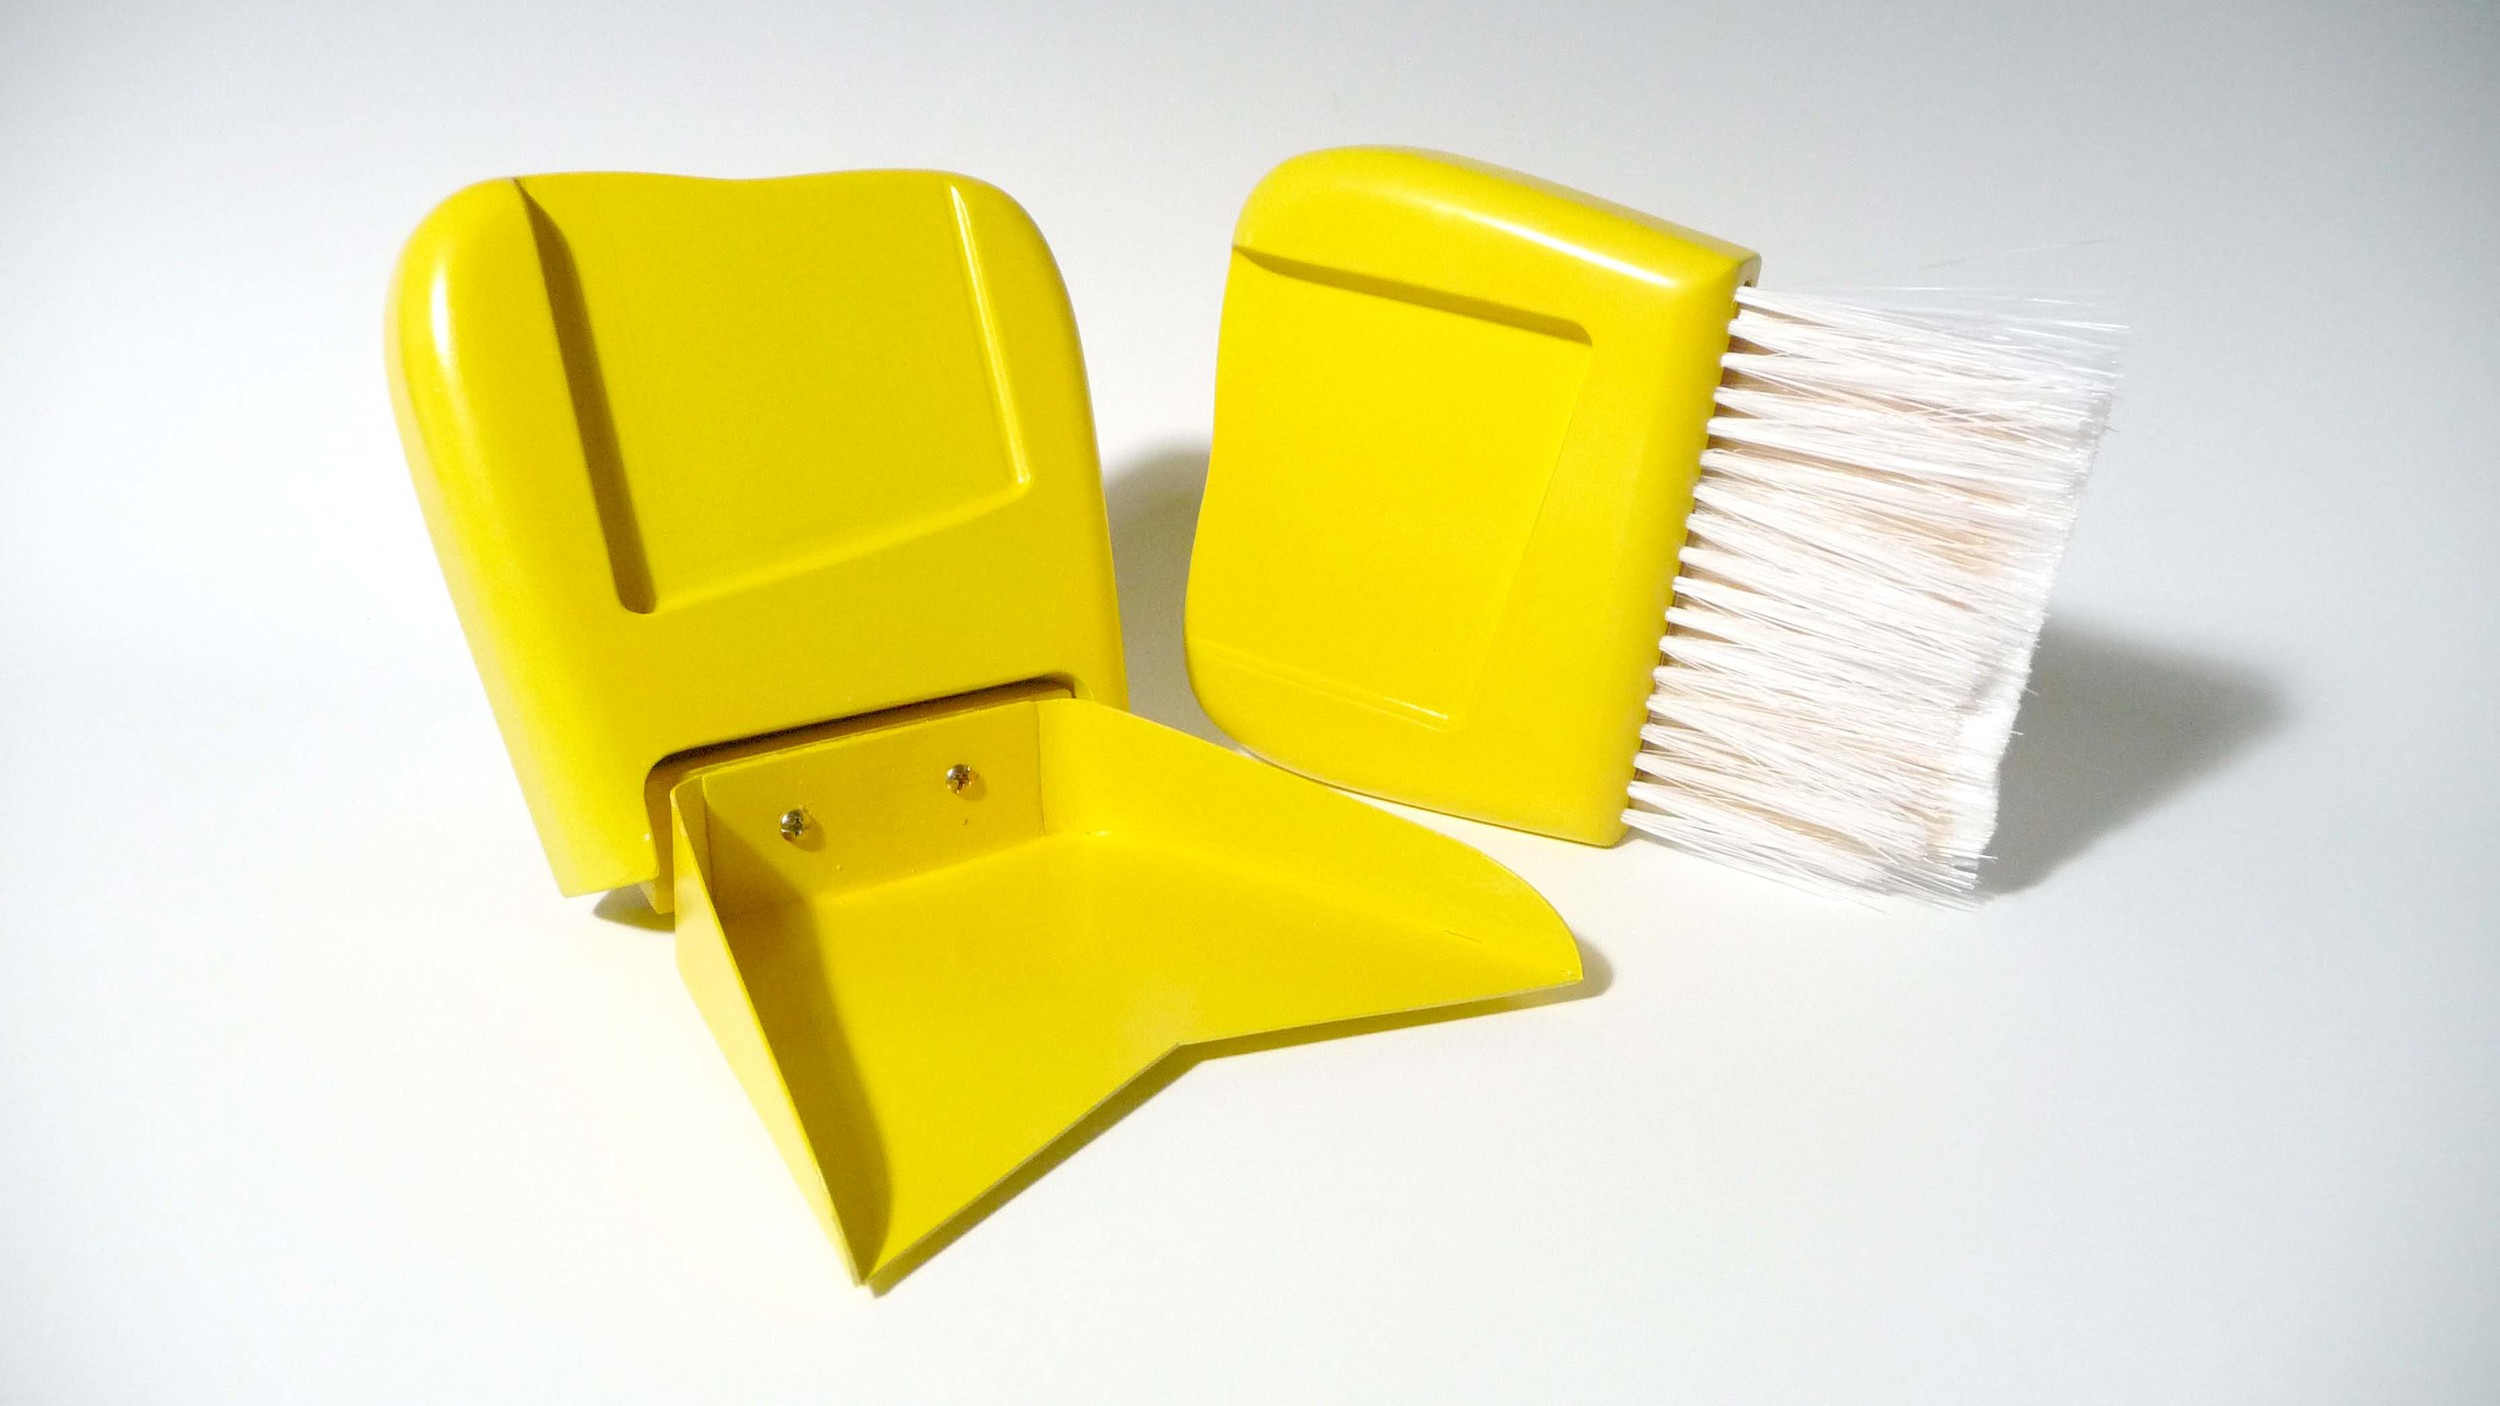 Ducky Dustpan and Brush